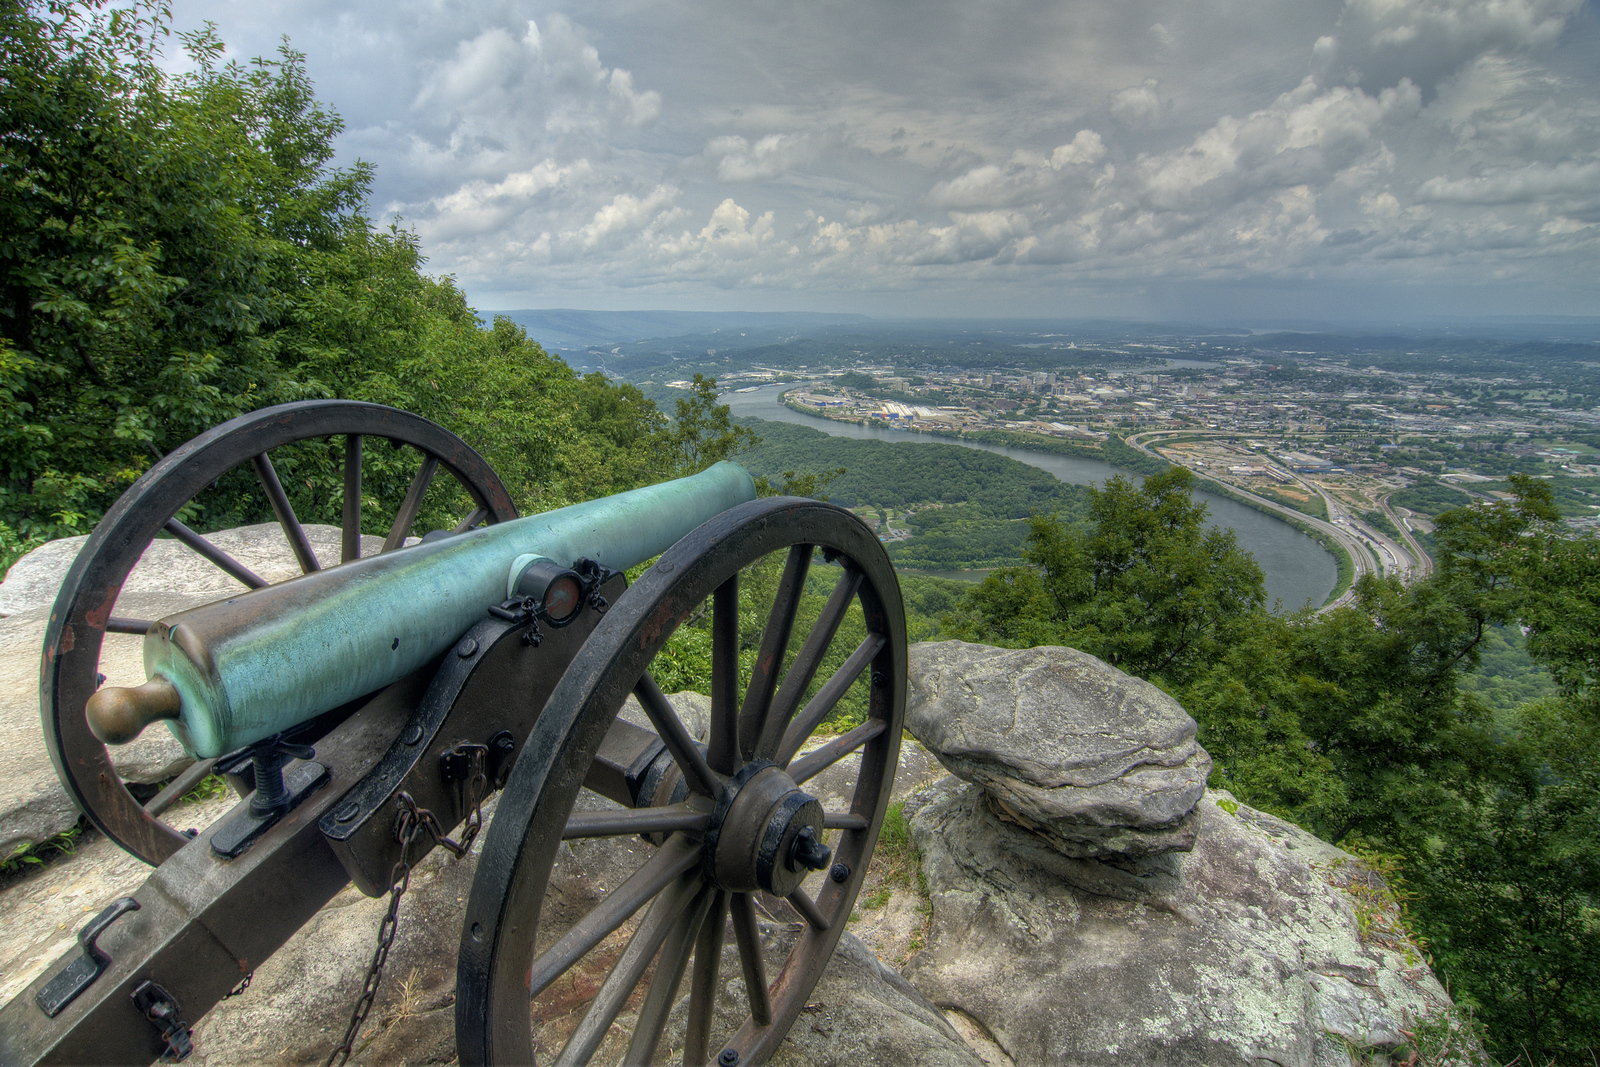 A Civil War-era canon overlooks the Tennessee River and downtown Chattanooga from Point Park, part of the Chickamauga & Chattanooga National Military Park, in Lookout Mountain, TN on Tuesday, July 21, 2015. Copyright 2015 Jason Barnette